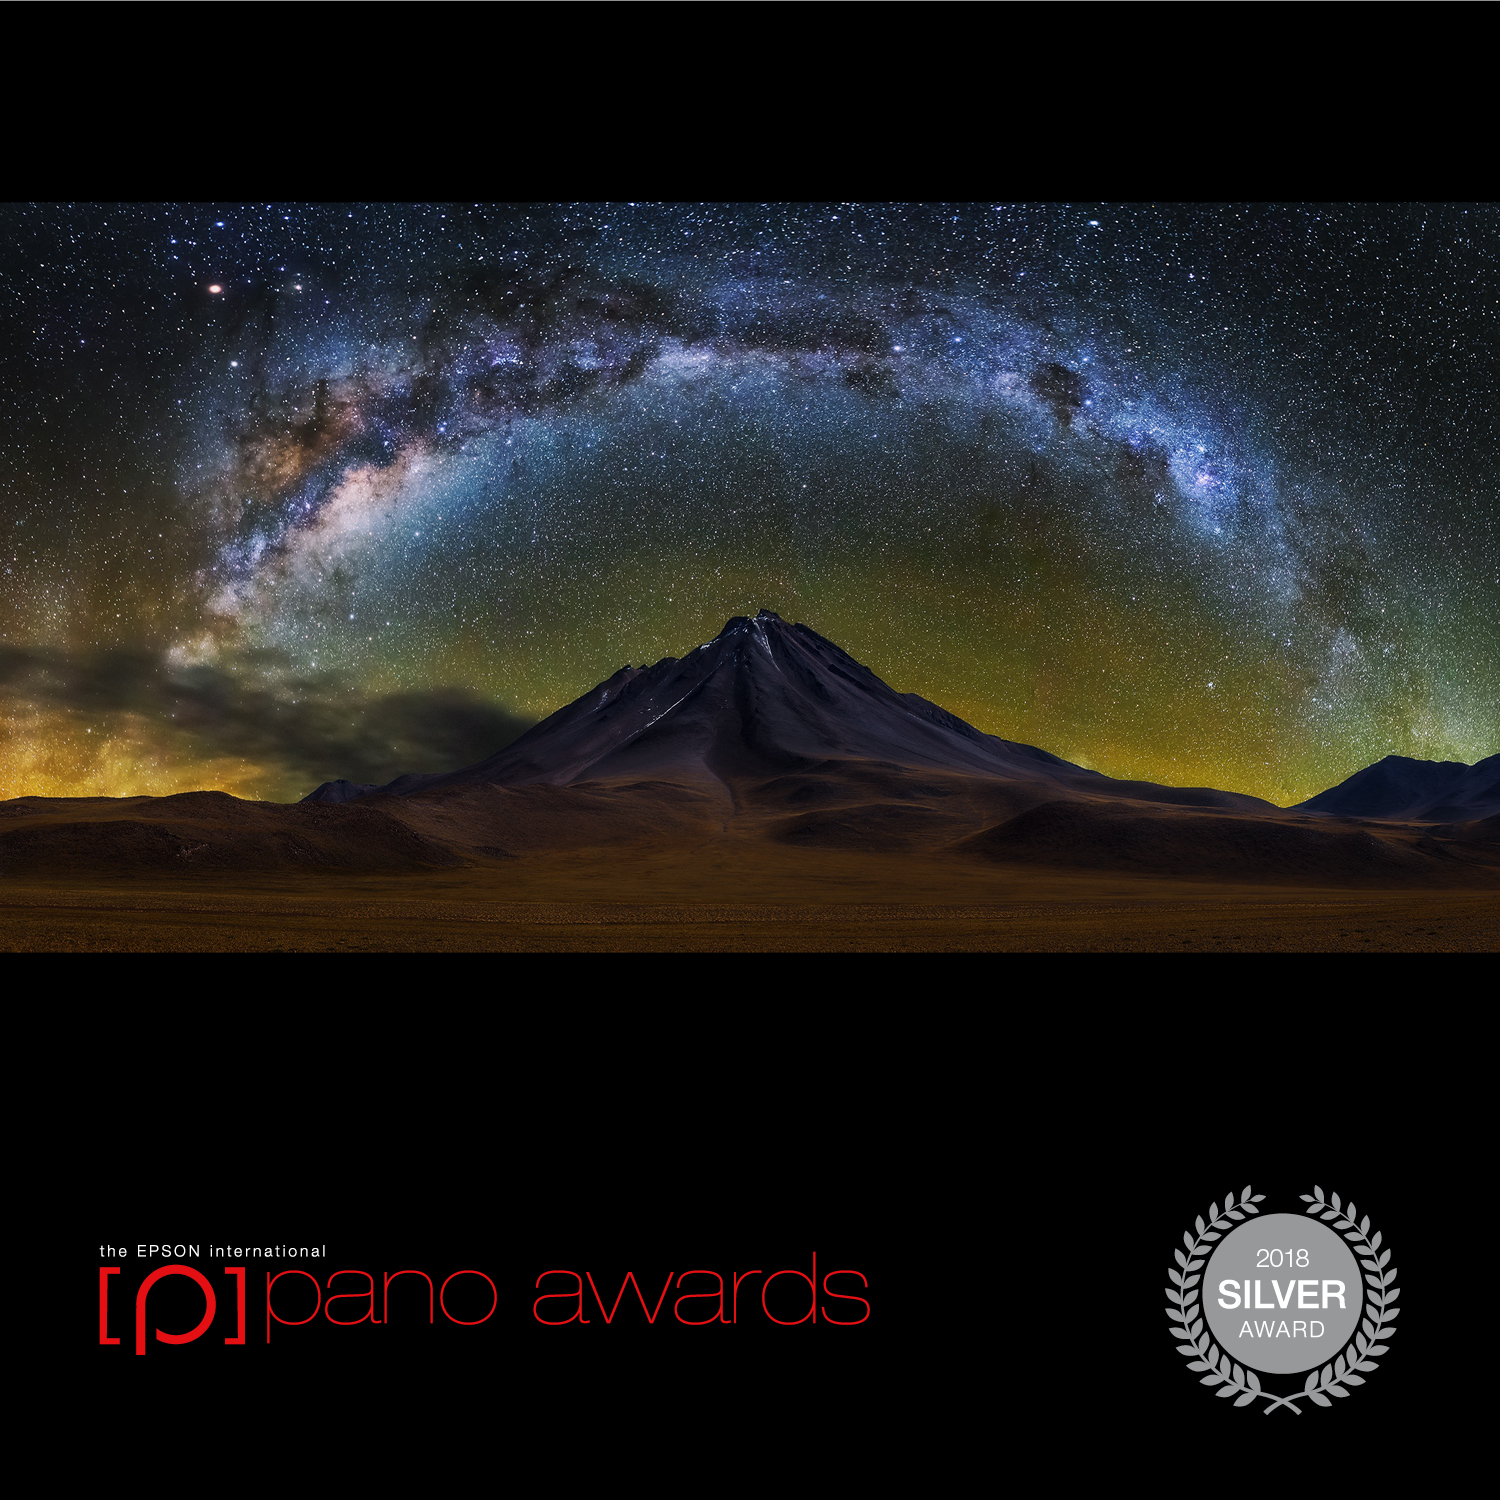 2018-Epson-Pano-Awards-Amateur-Silver-18